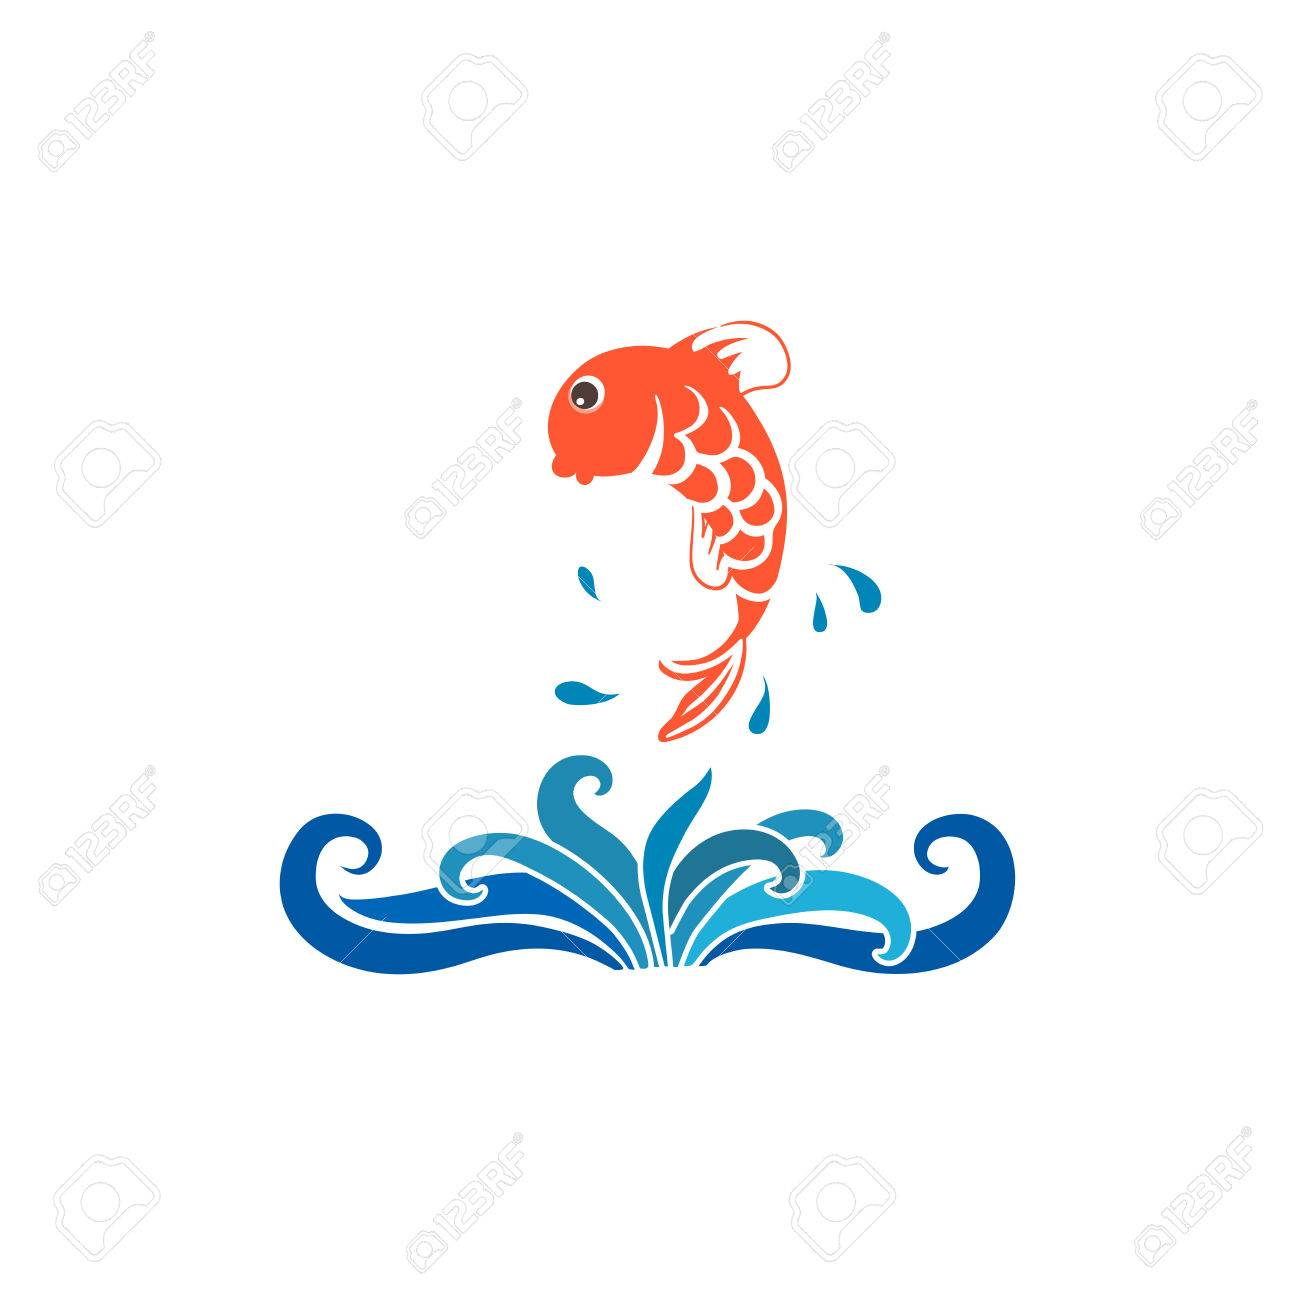 Vector cartoon fish jumping out of water.